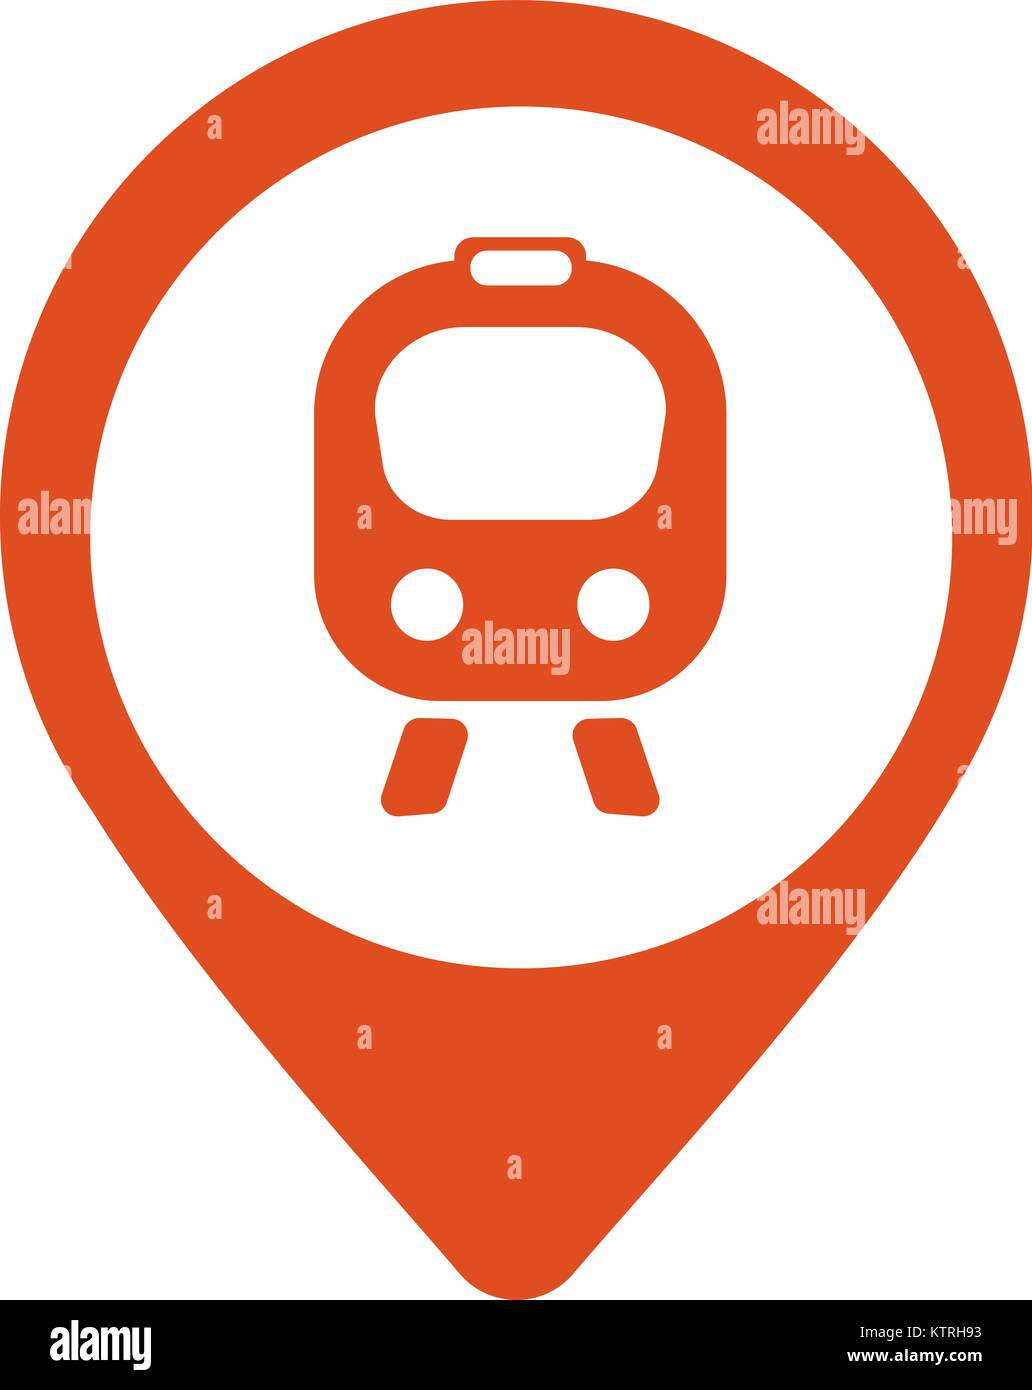 Map icon with train, trolley - vector illustration - Stock Vector